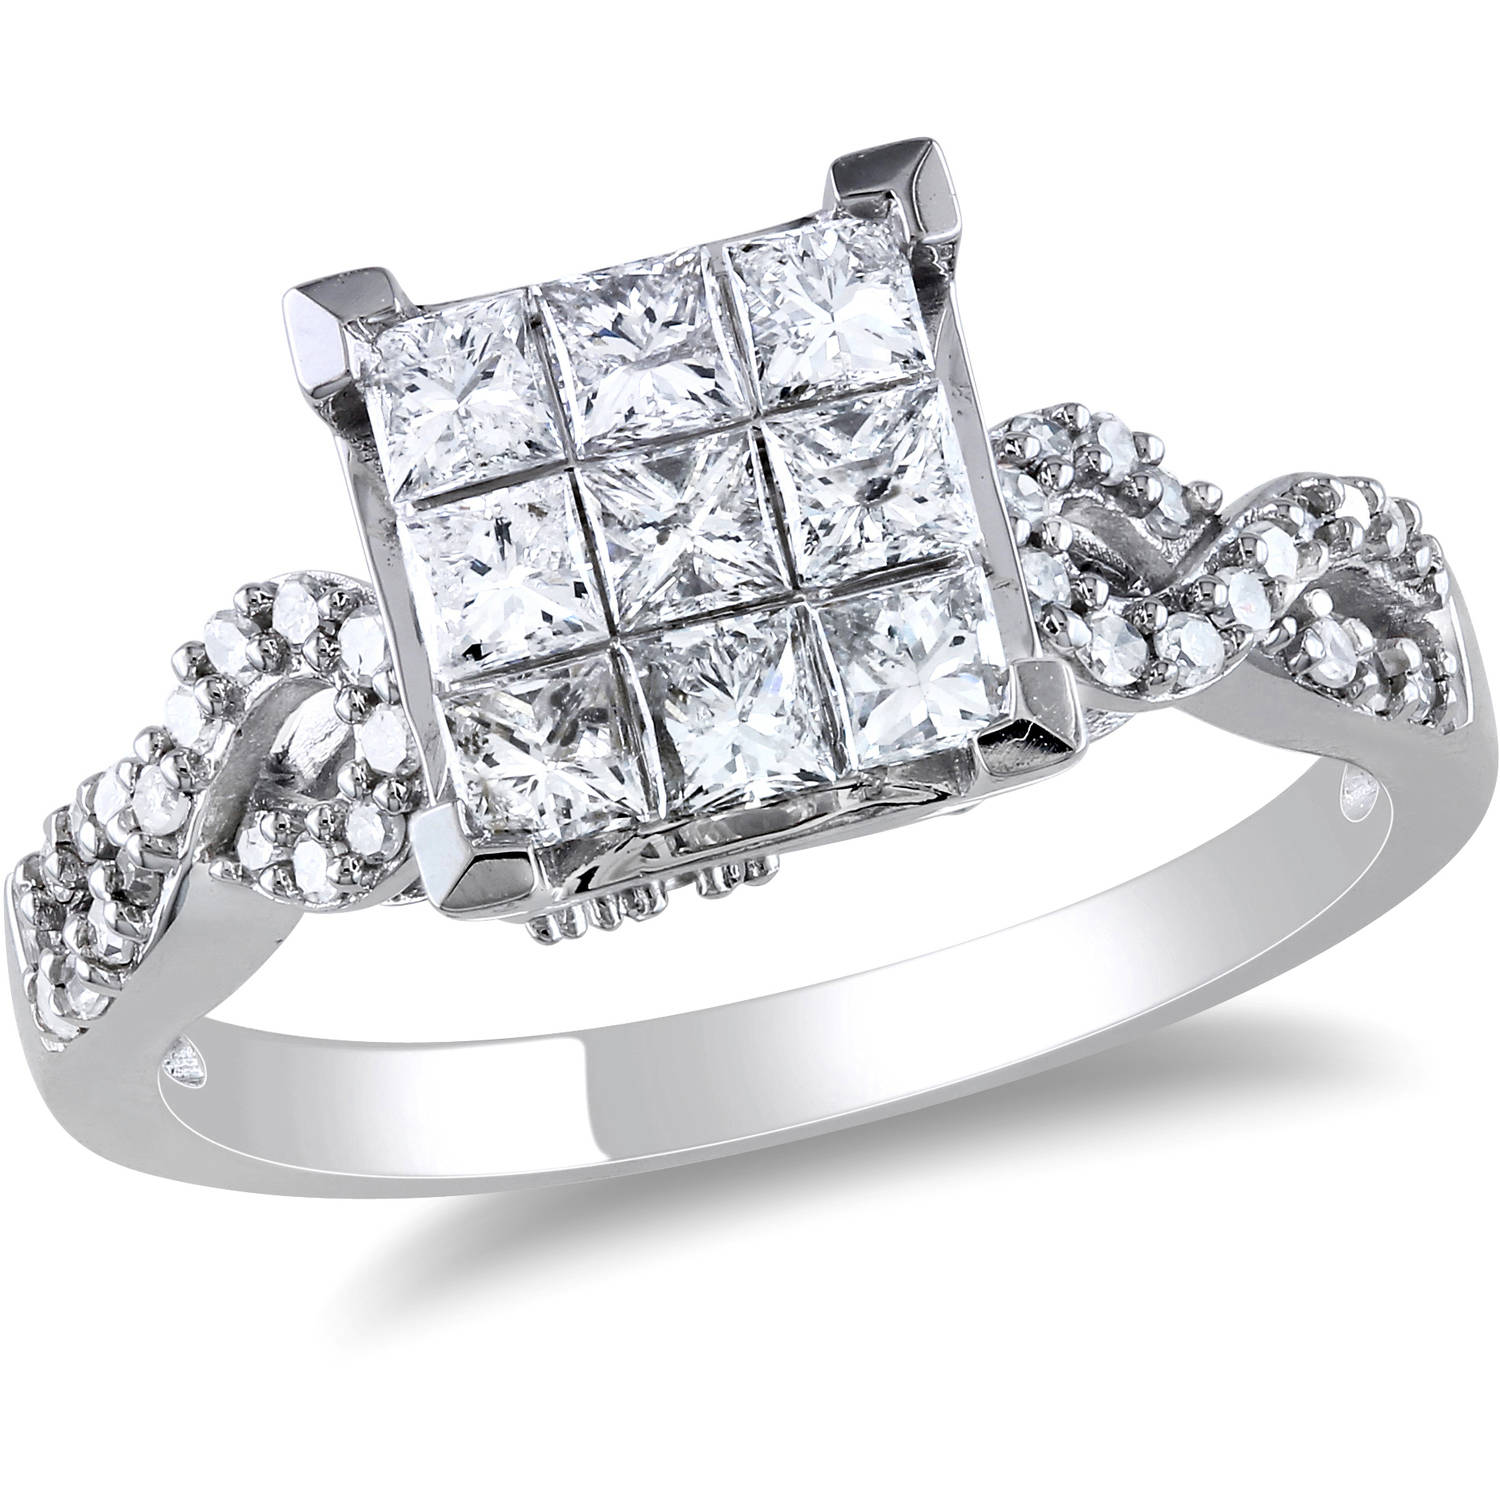 1 Carat T.W. Princess and Round Cut-Diamond Engagement Ring in 10kt White Gold